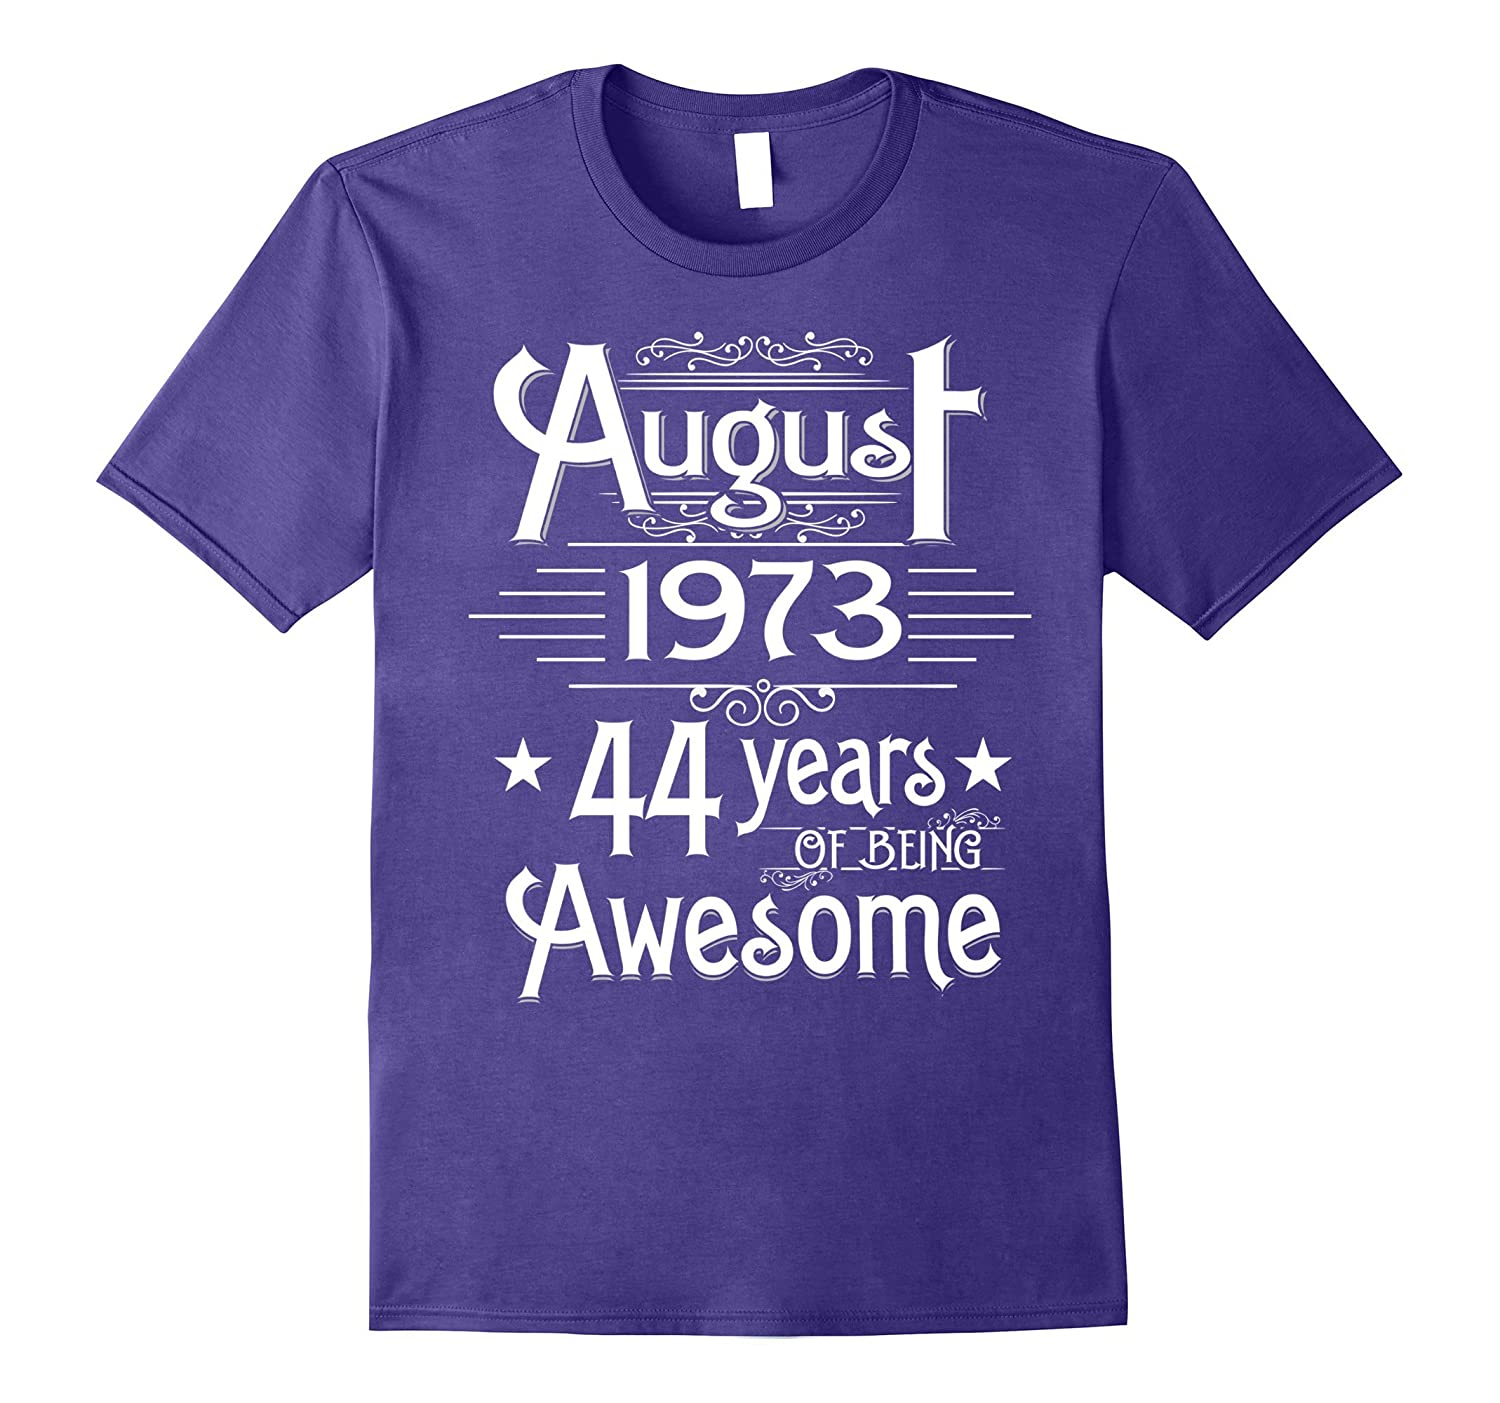 August 1973 44 Years Of Being Awesome T-shirt Born In August-Vaci